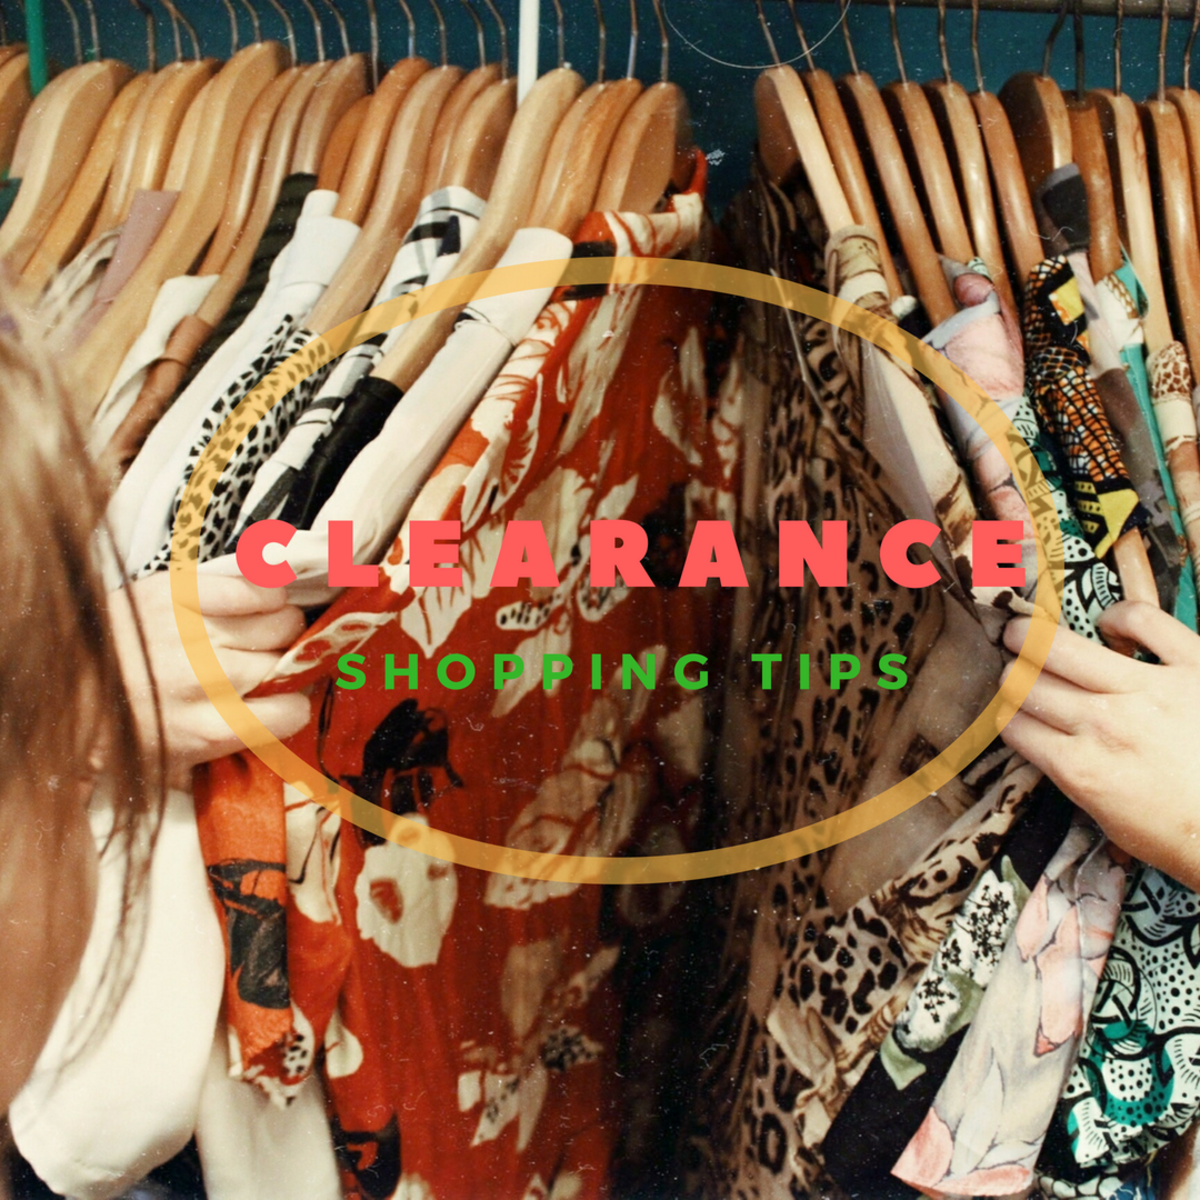 Discover some tips for shopping clearance sales.